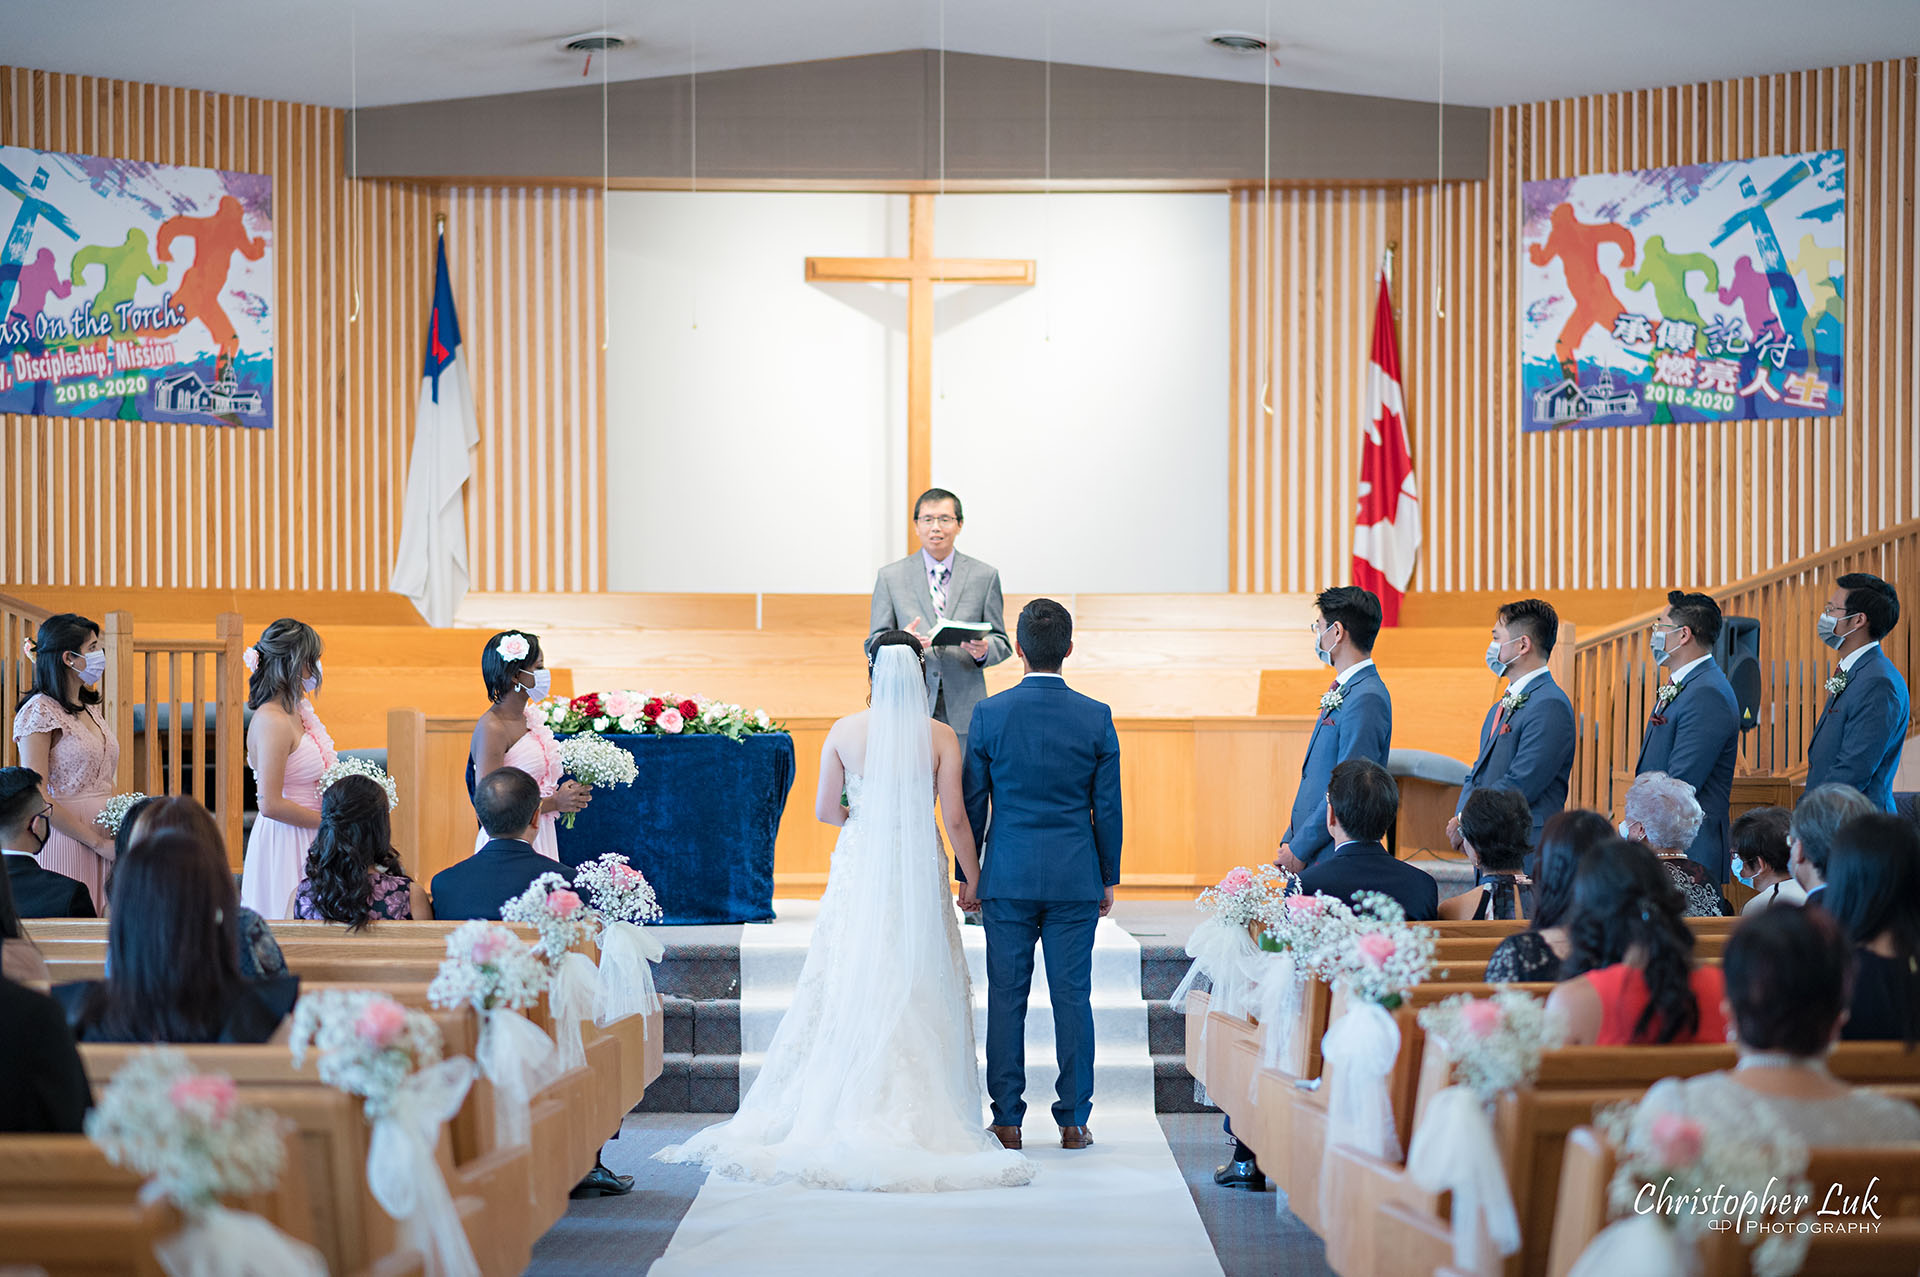 Christopher Luk Toronto Wedding Photographer Bridle Trail Baptist Church Unionville Main Street Crystal Fountain Event Venue Ceremony Location Interior Bride Groom Centre Aisle Sanctuary Officiant Detail